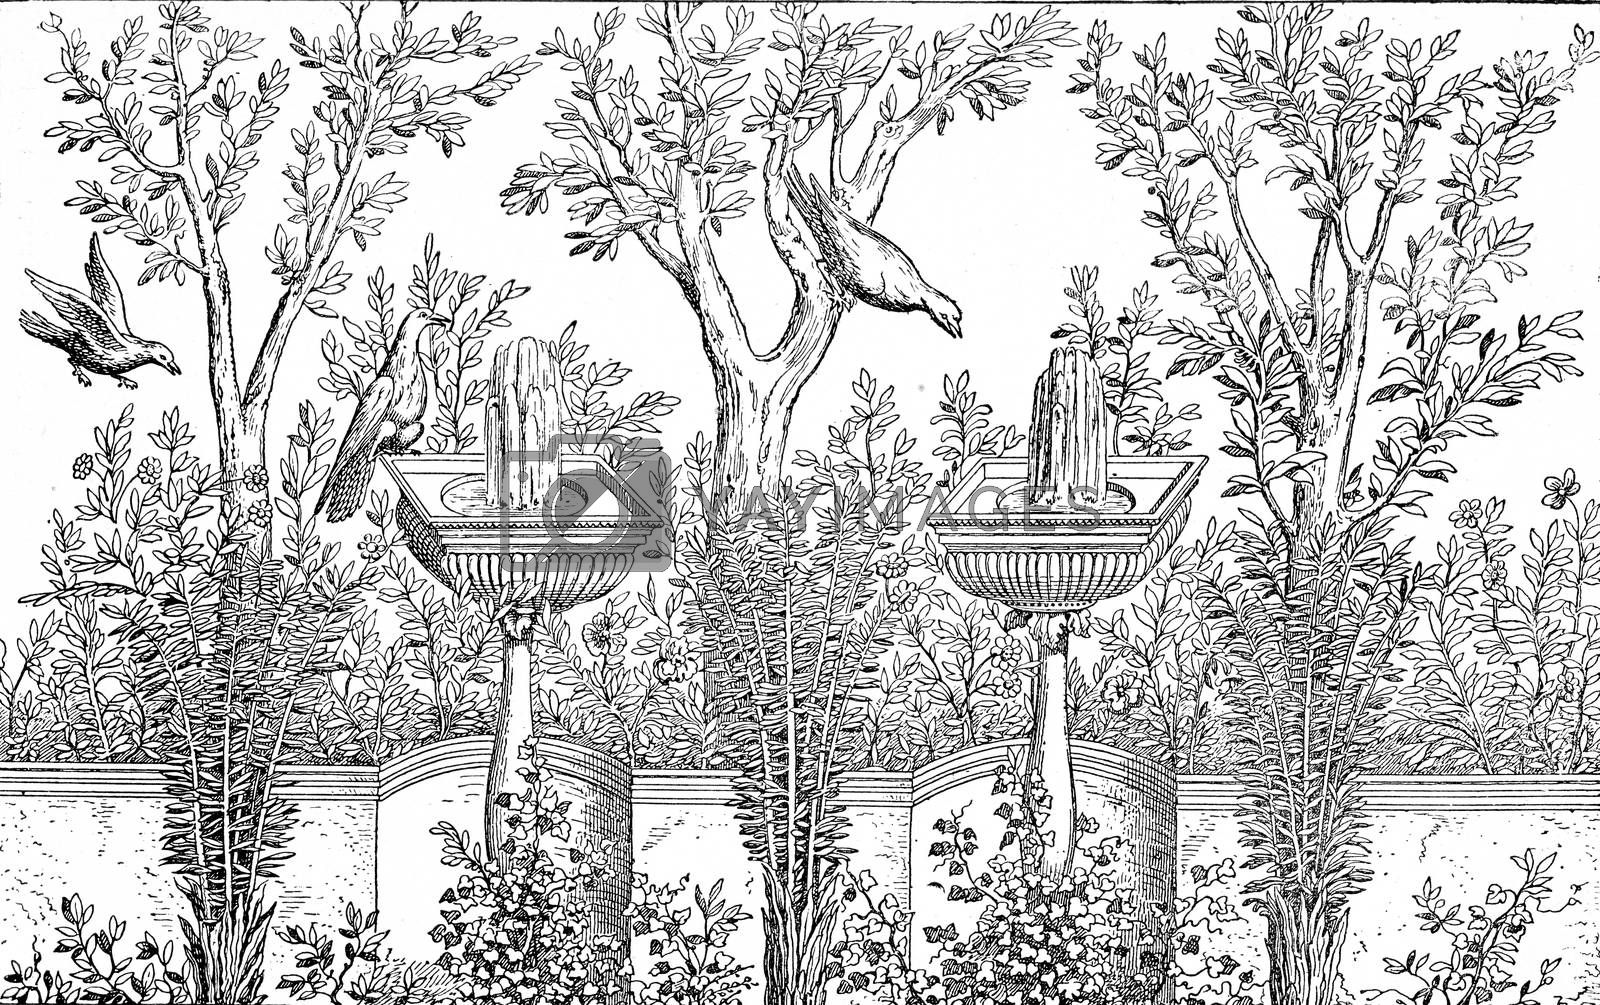 Decorative Garden, vintage engraved illustration. Private life of Ancient-Antique family-1881.